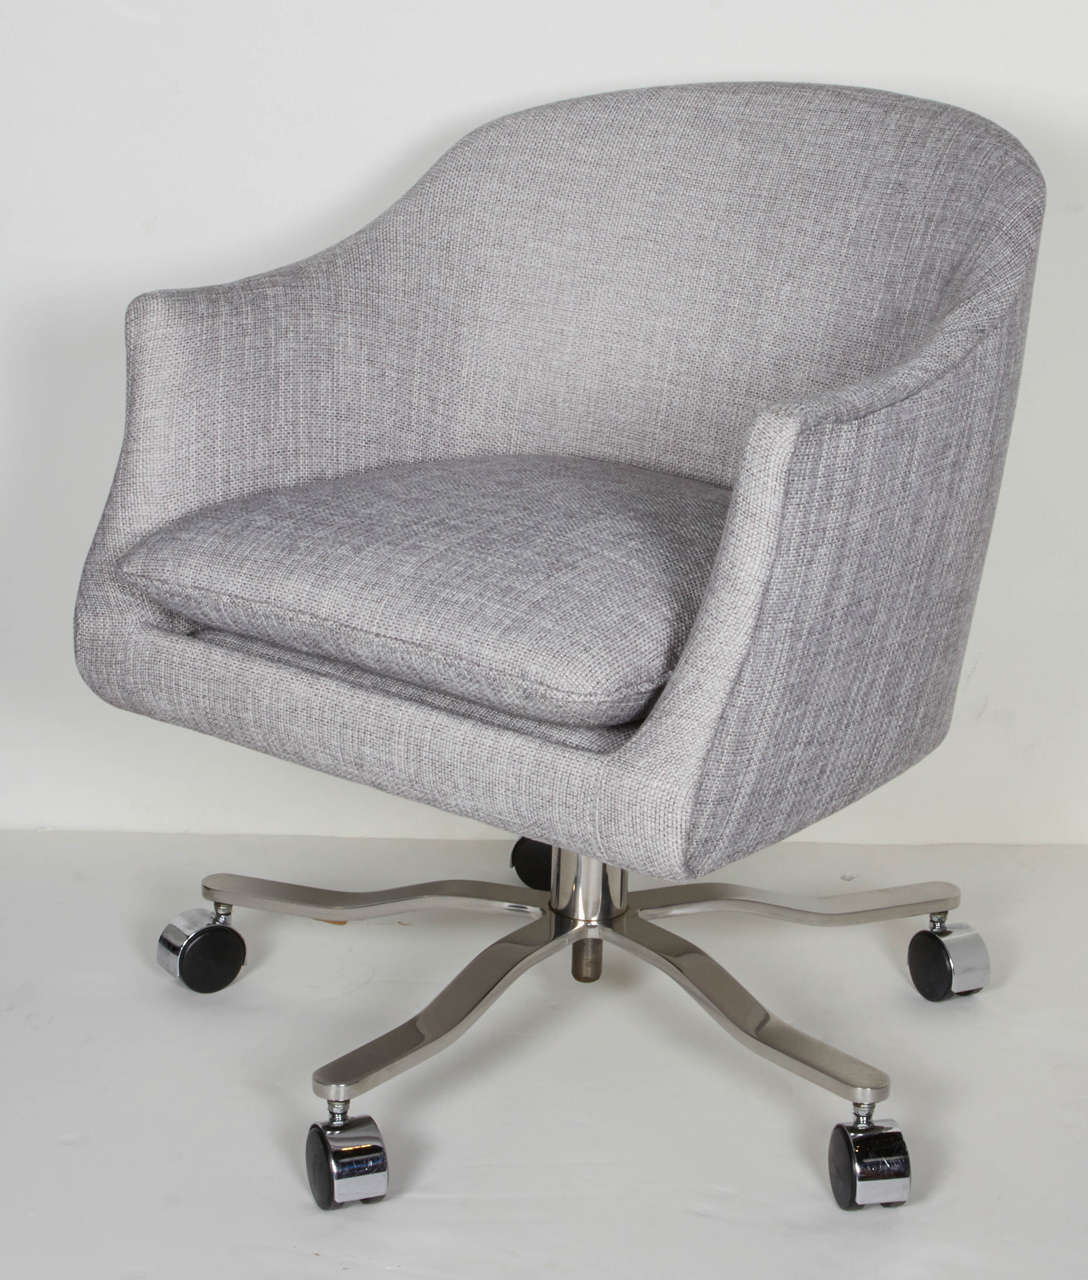 Mid Century Modern Swivel Desk Chair Designed By Ward Bennett For Sale At 1st